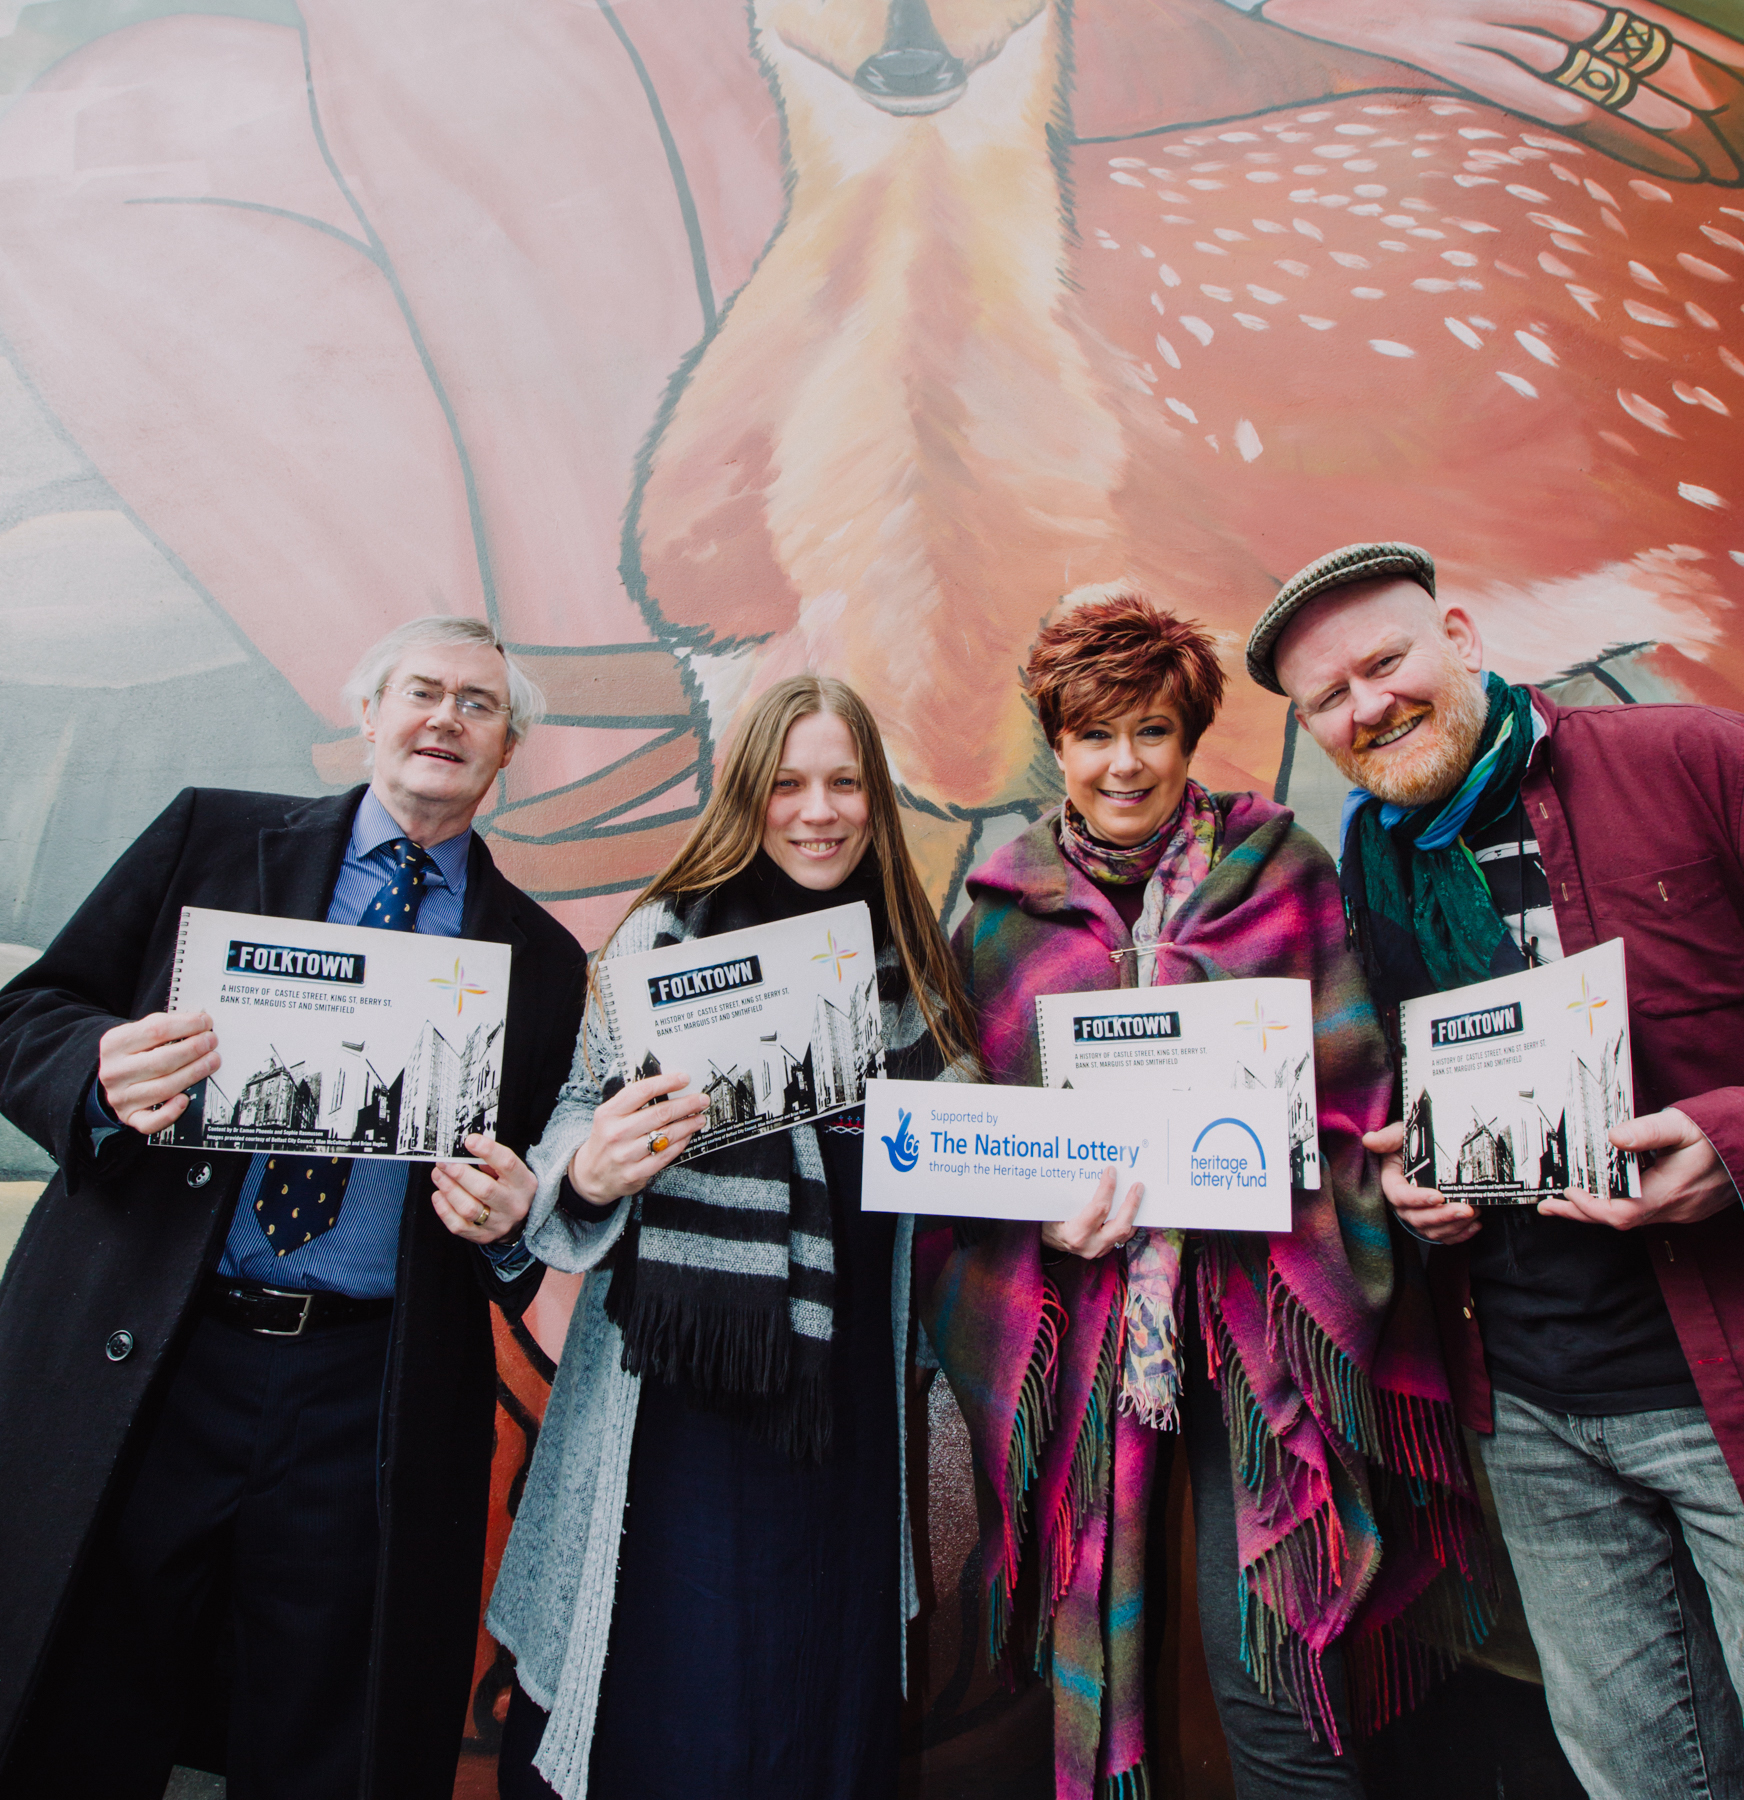 Booklet reveals tales from one of Belfast's most historic quarters